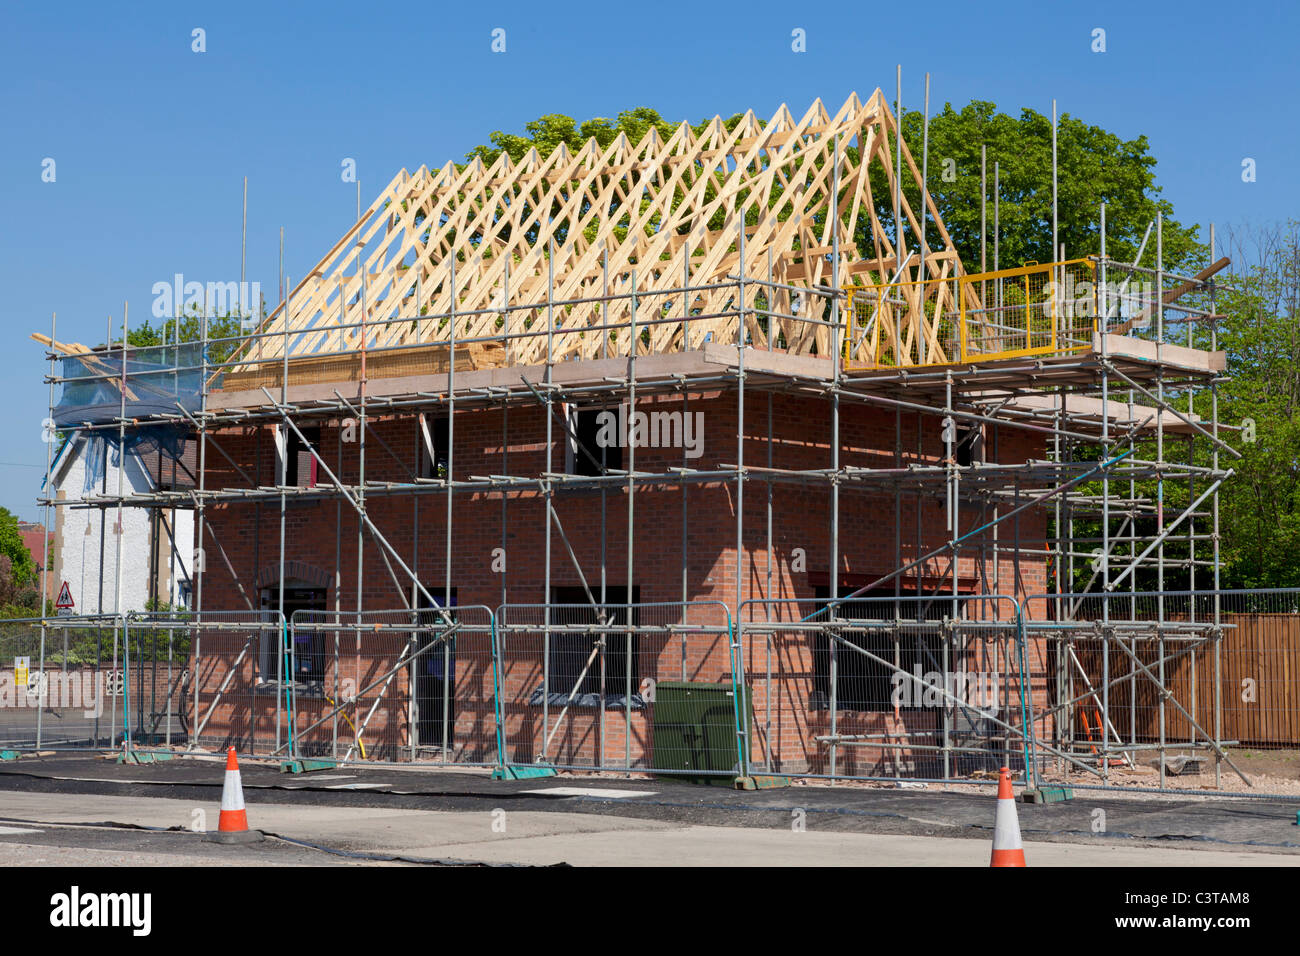 New housing under construction on residential estate on a former brown field site England GB UK EU Europe - Stock Image